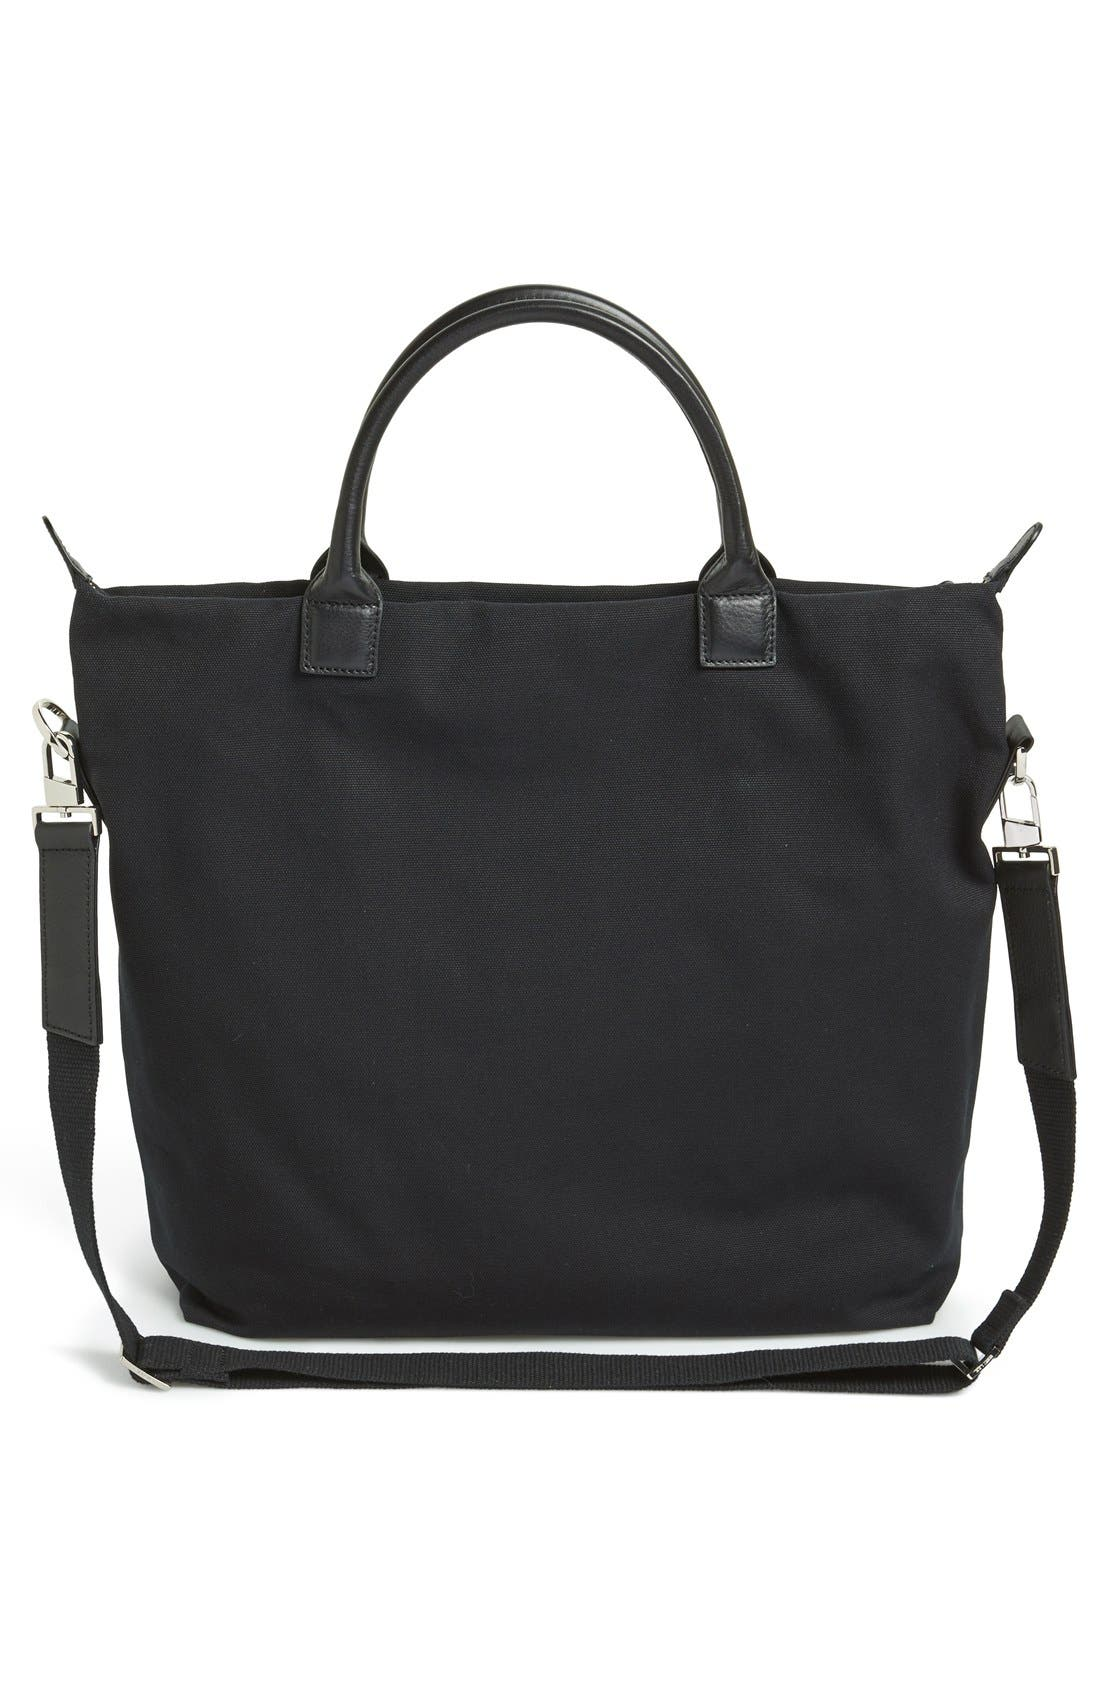 Alternate Image 3  - WANT LES ESSENTIELS 'O'Hare' Tote Bag